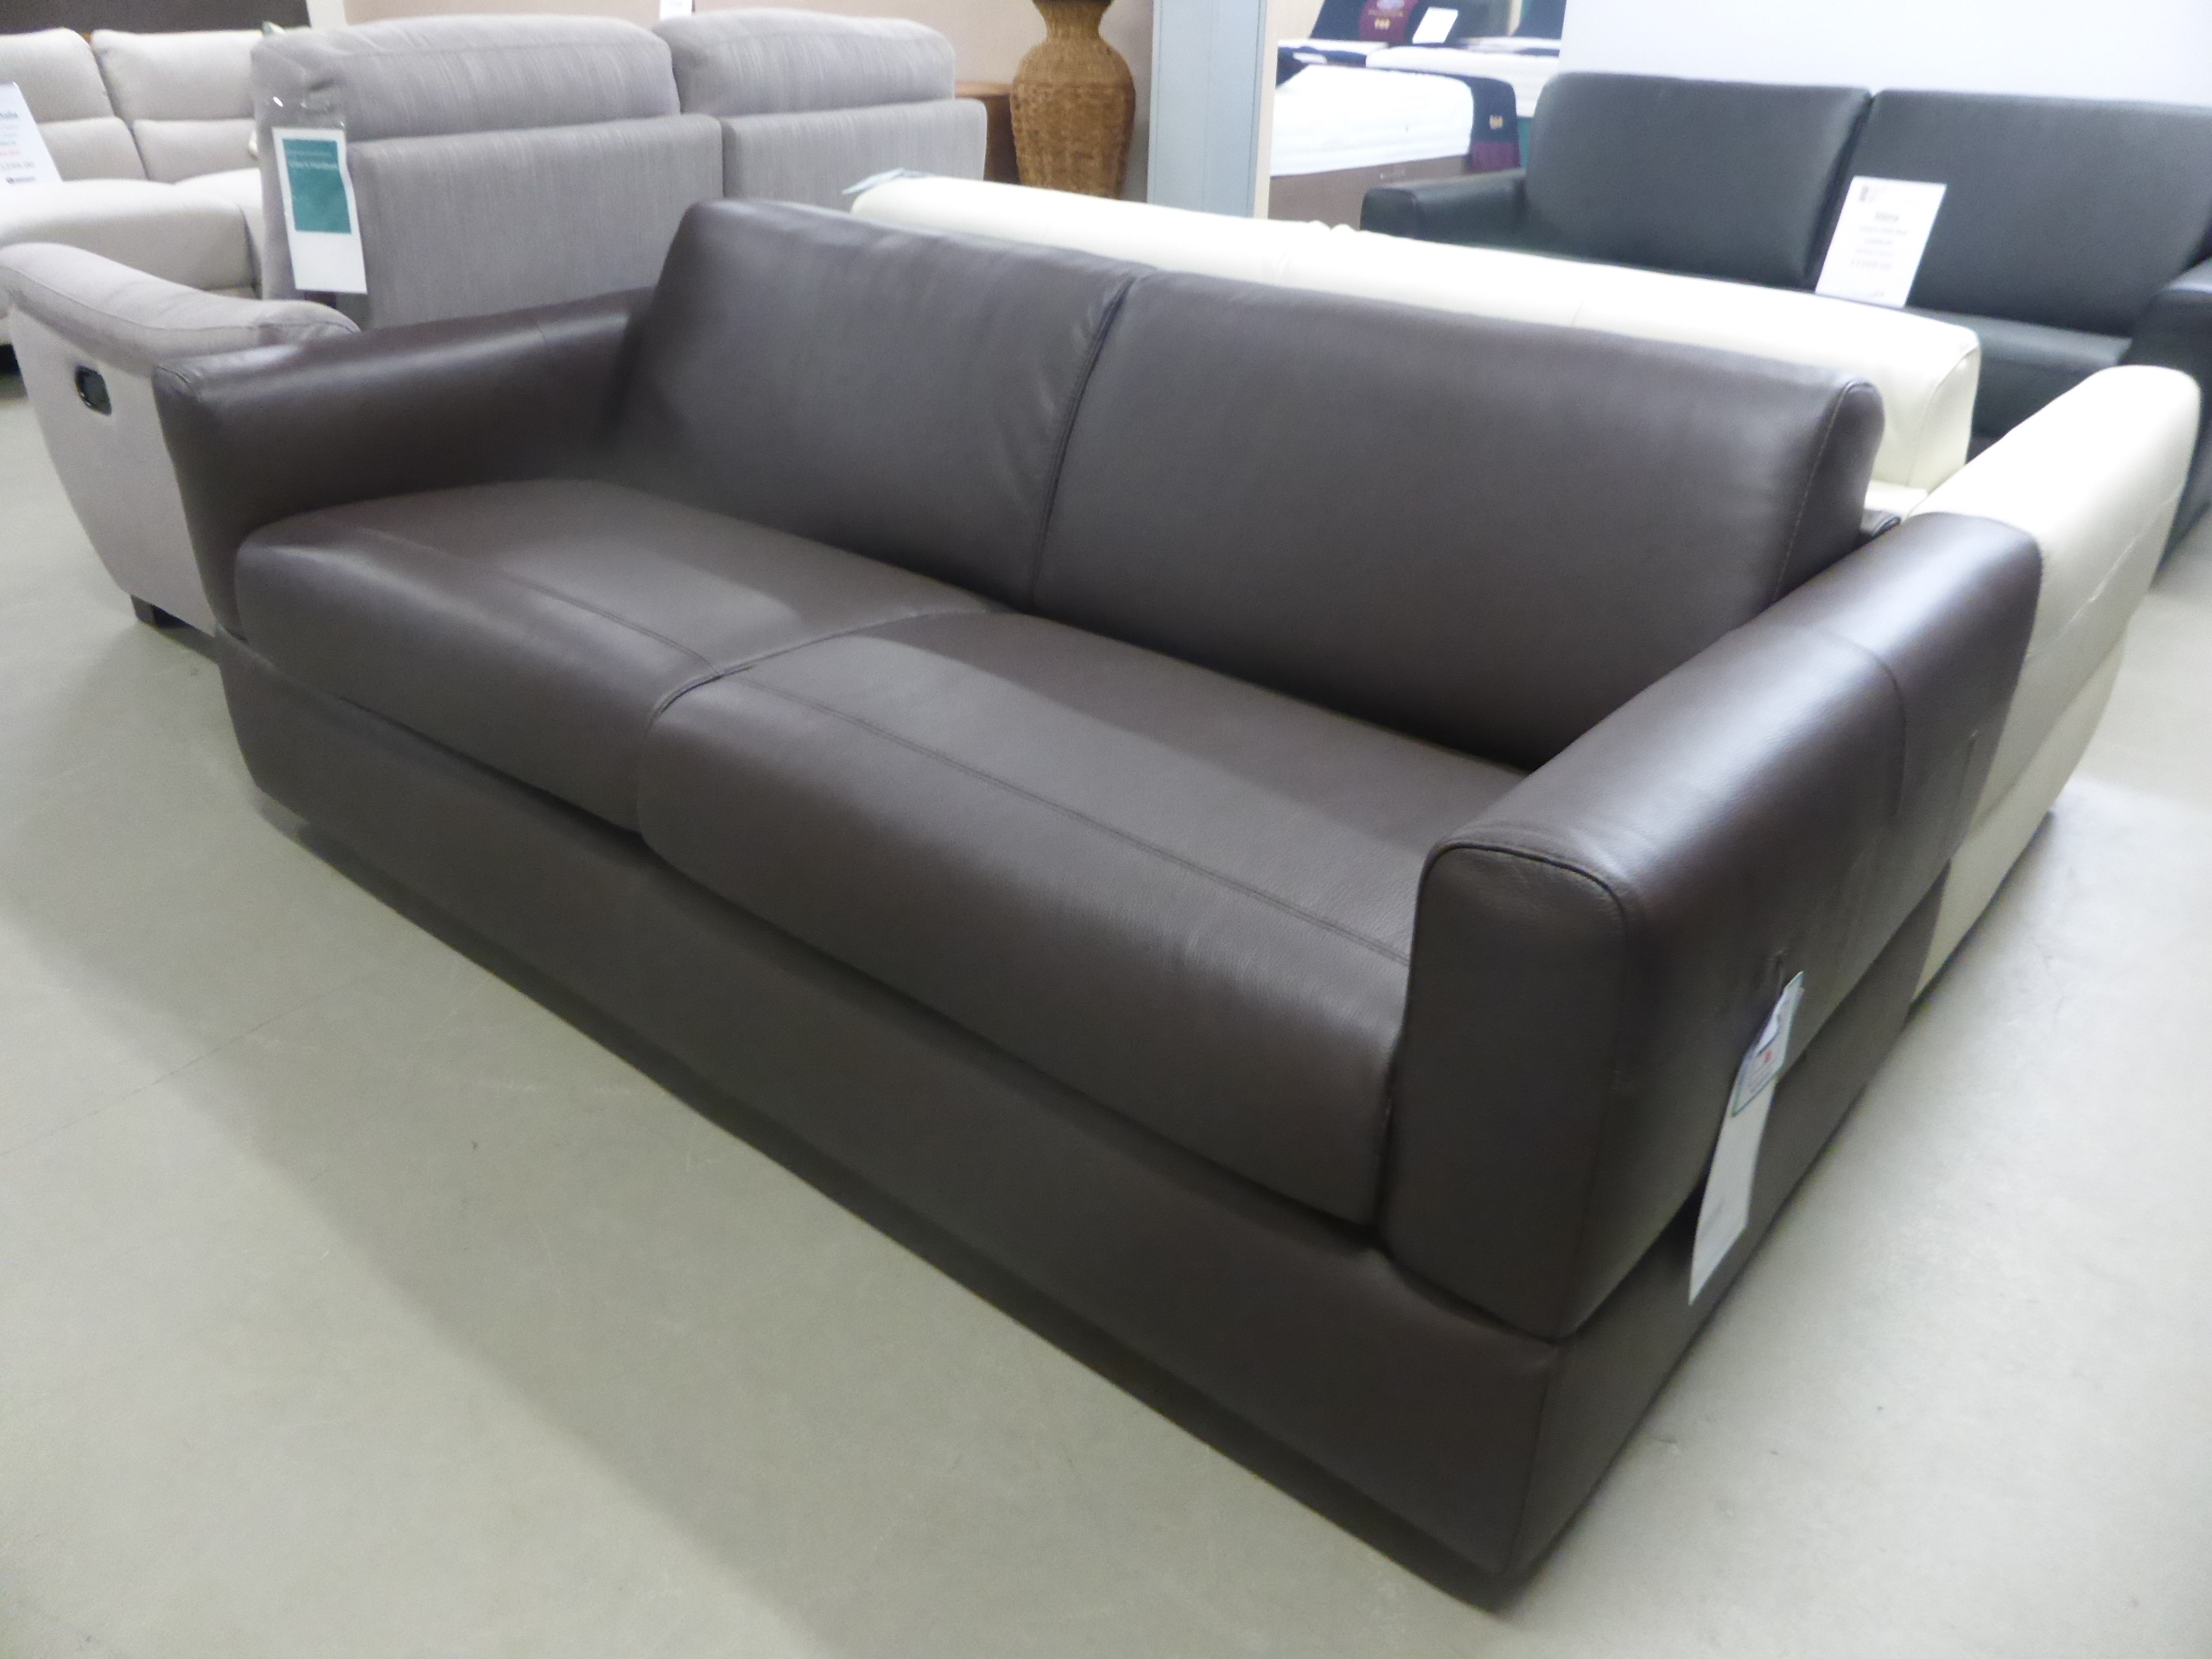 cult sectional leather sofa by natuzzi italia grey corner cheap uk rossana manufactured italian bed